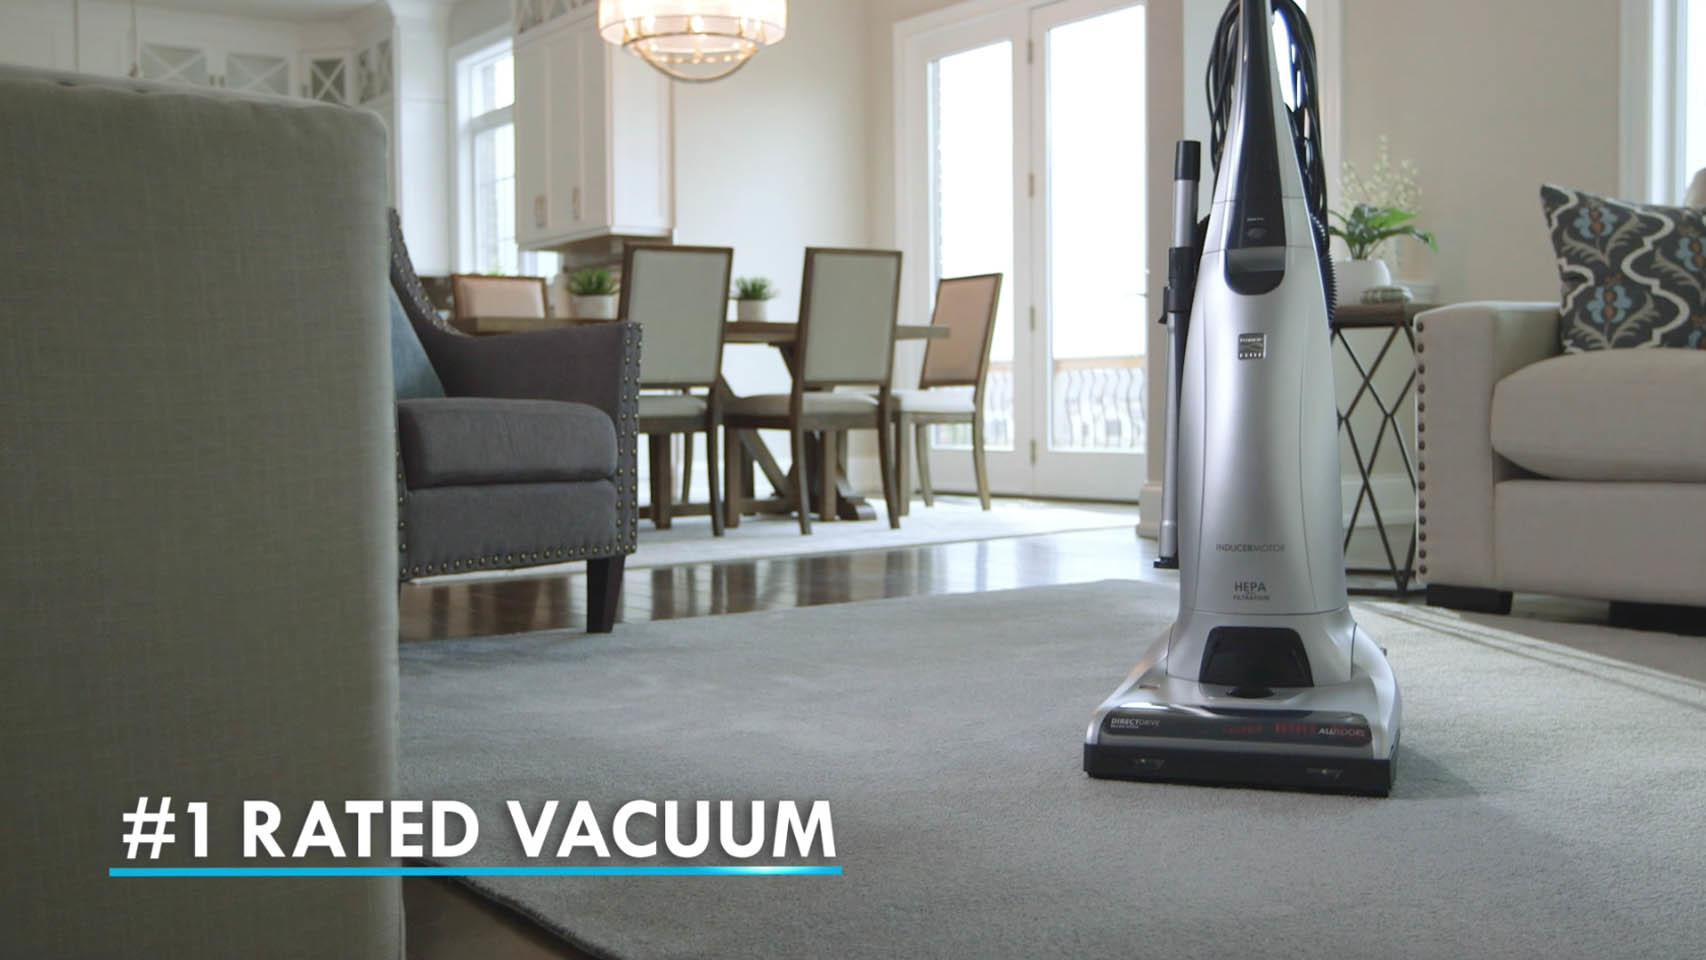 Kenmore Elite 31150 Bagged Upright Vacuum Cleaner, Pet Friendly, Silver (Complete Set), with Microfiber Cleaner Bundle